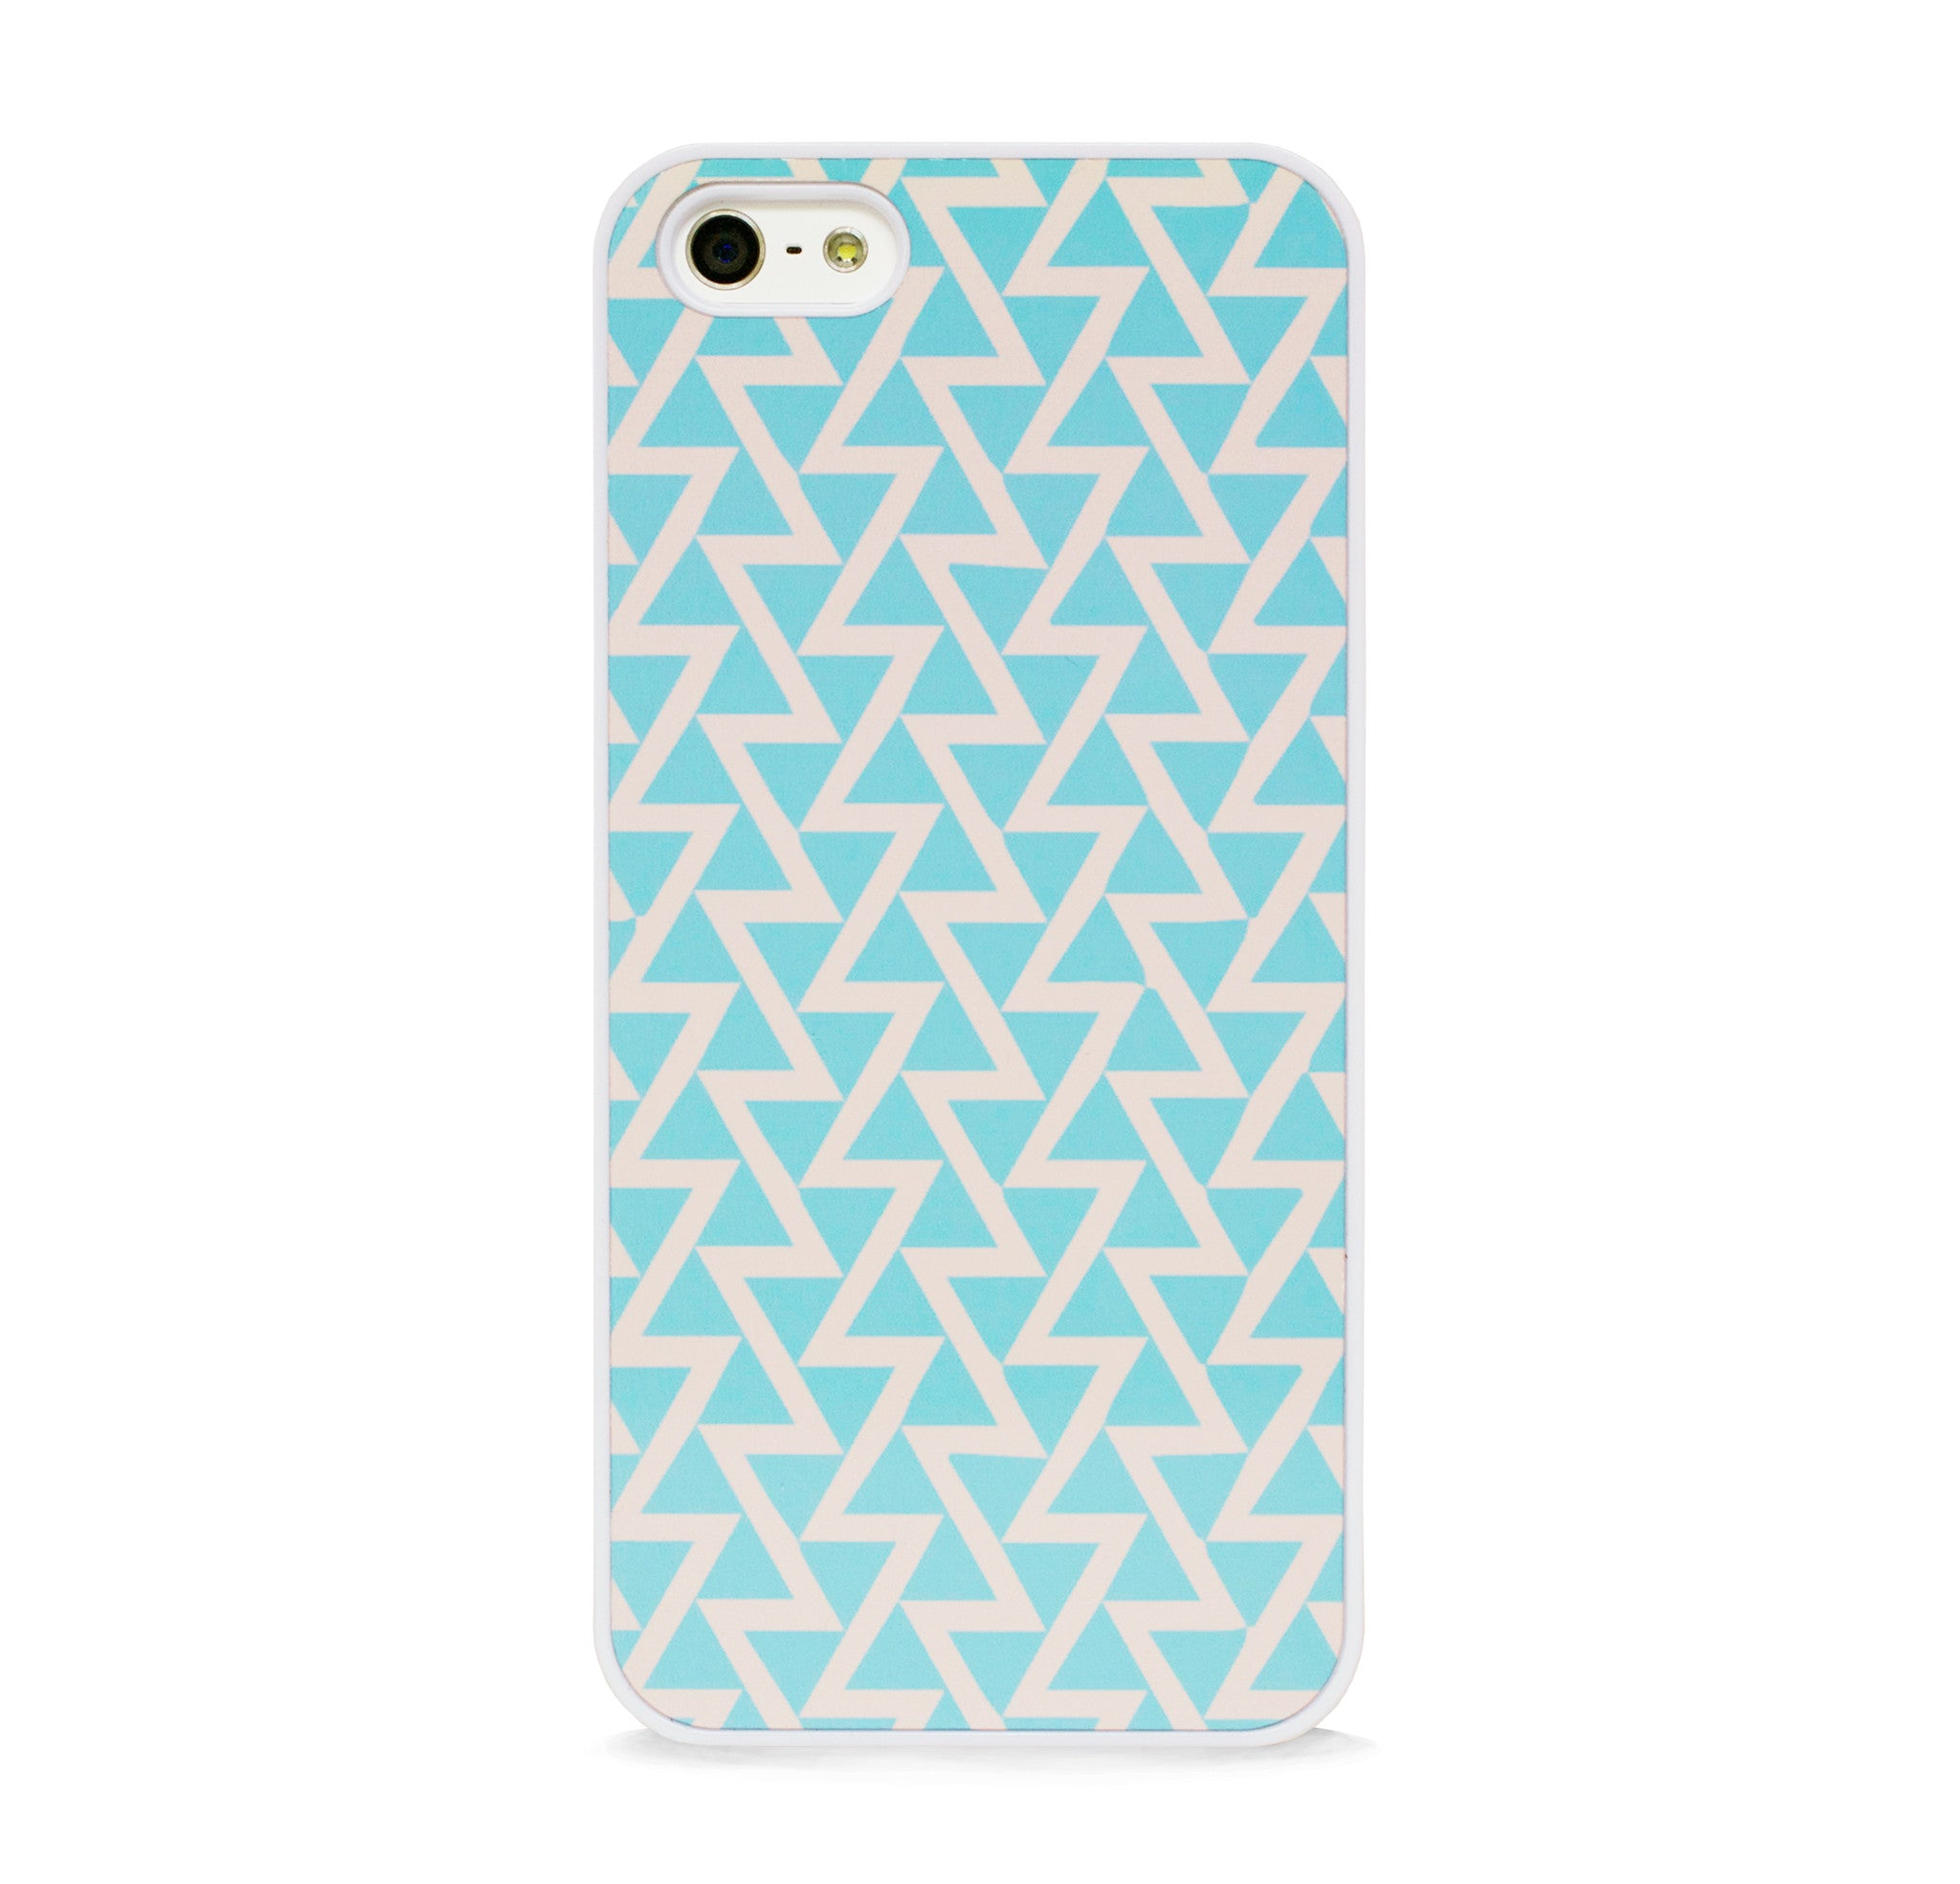 GEO TRIANGLE MINT FOR IPHONE 5/5S